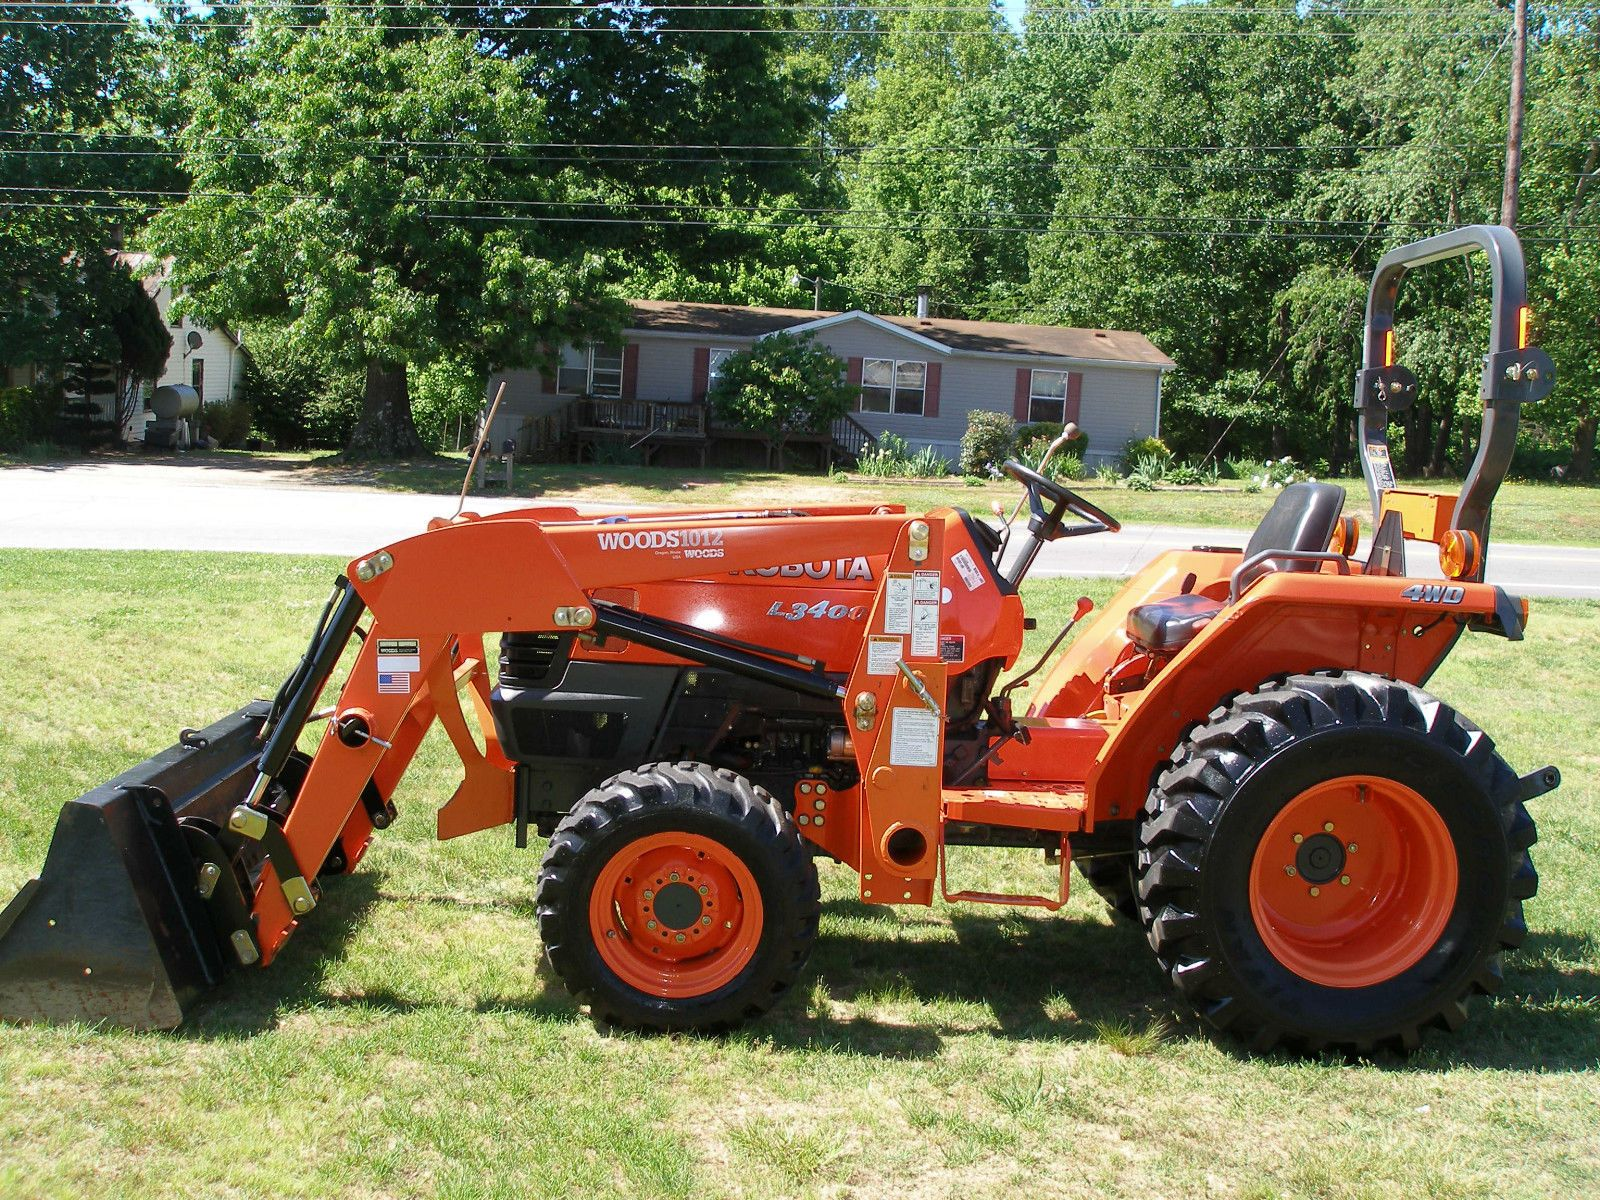 VERY NICE KUBOTA L3400 4X4 LOADER TRACTOR WITH ONLY 225 HOURS Kubota  Tractors, 4x4,